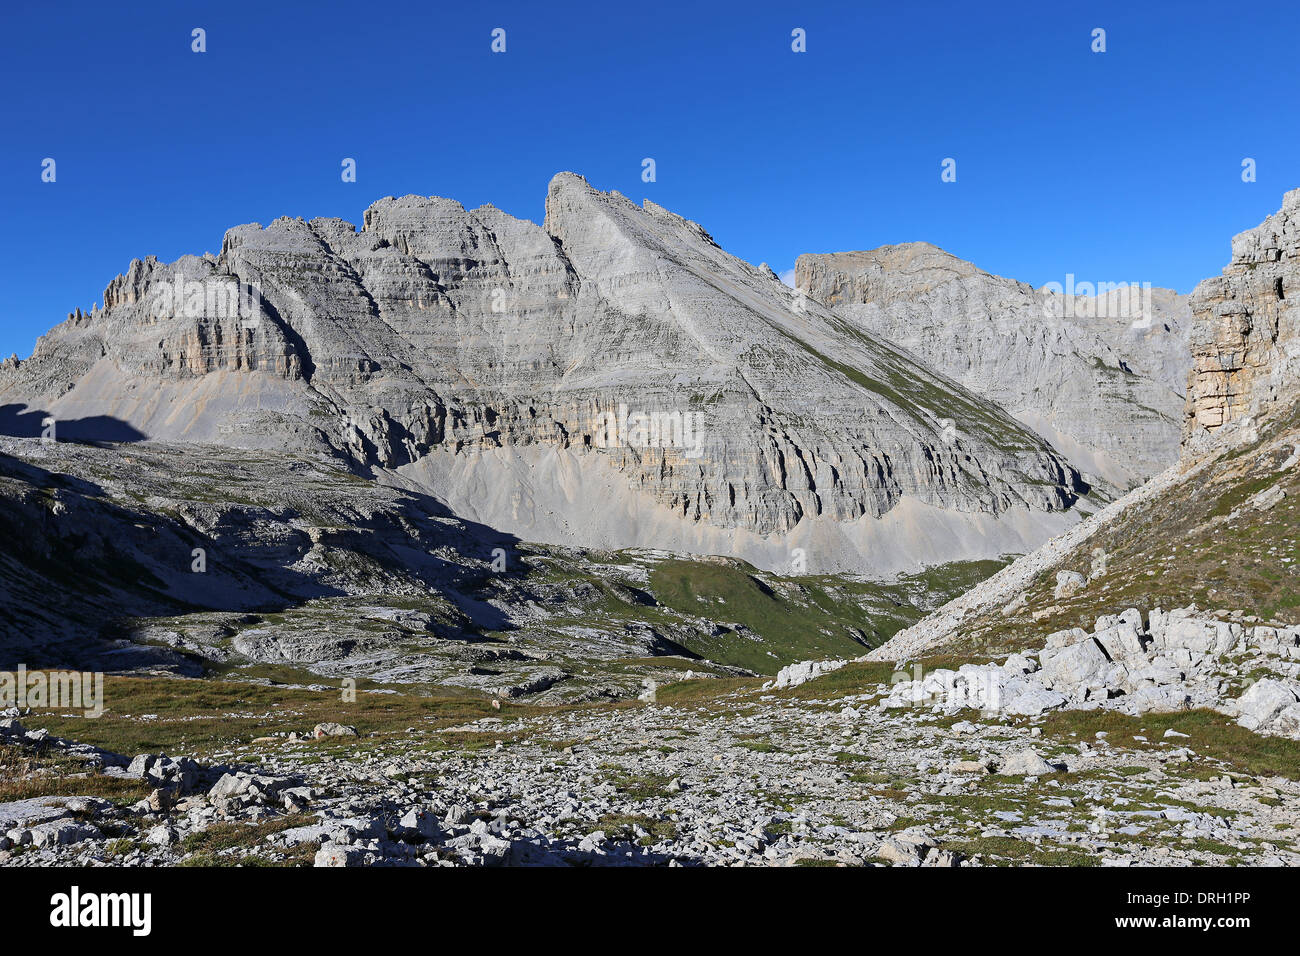 The Latemar massif. The Dolomites. - Stock Image